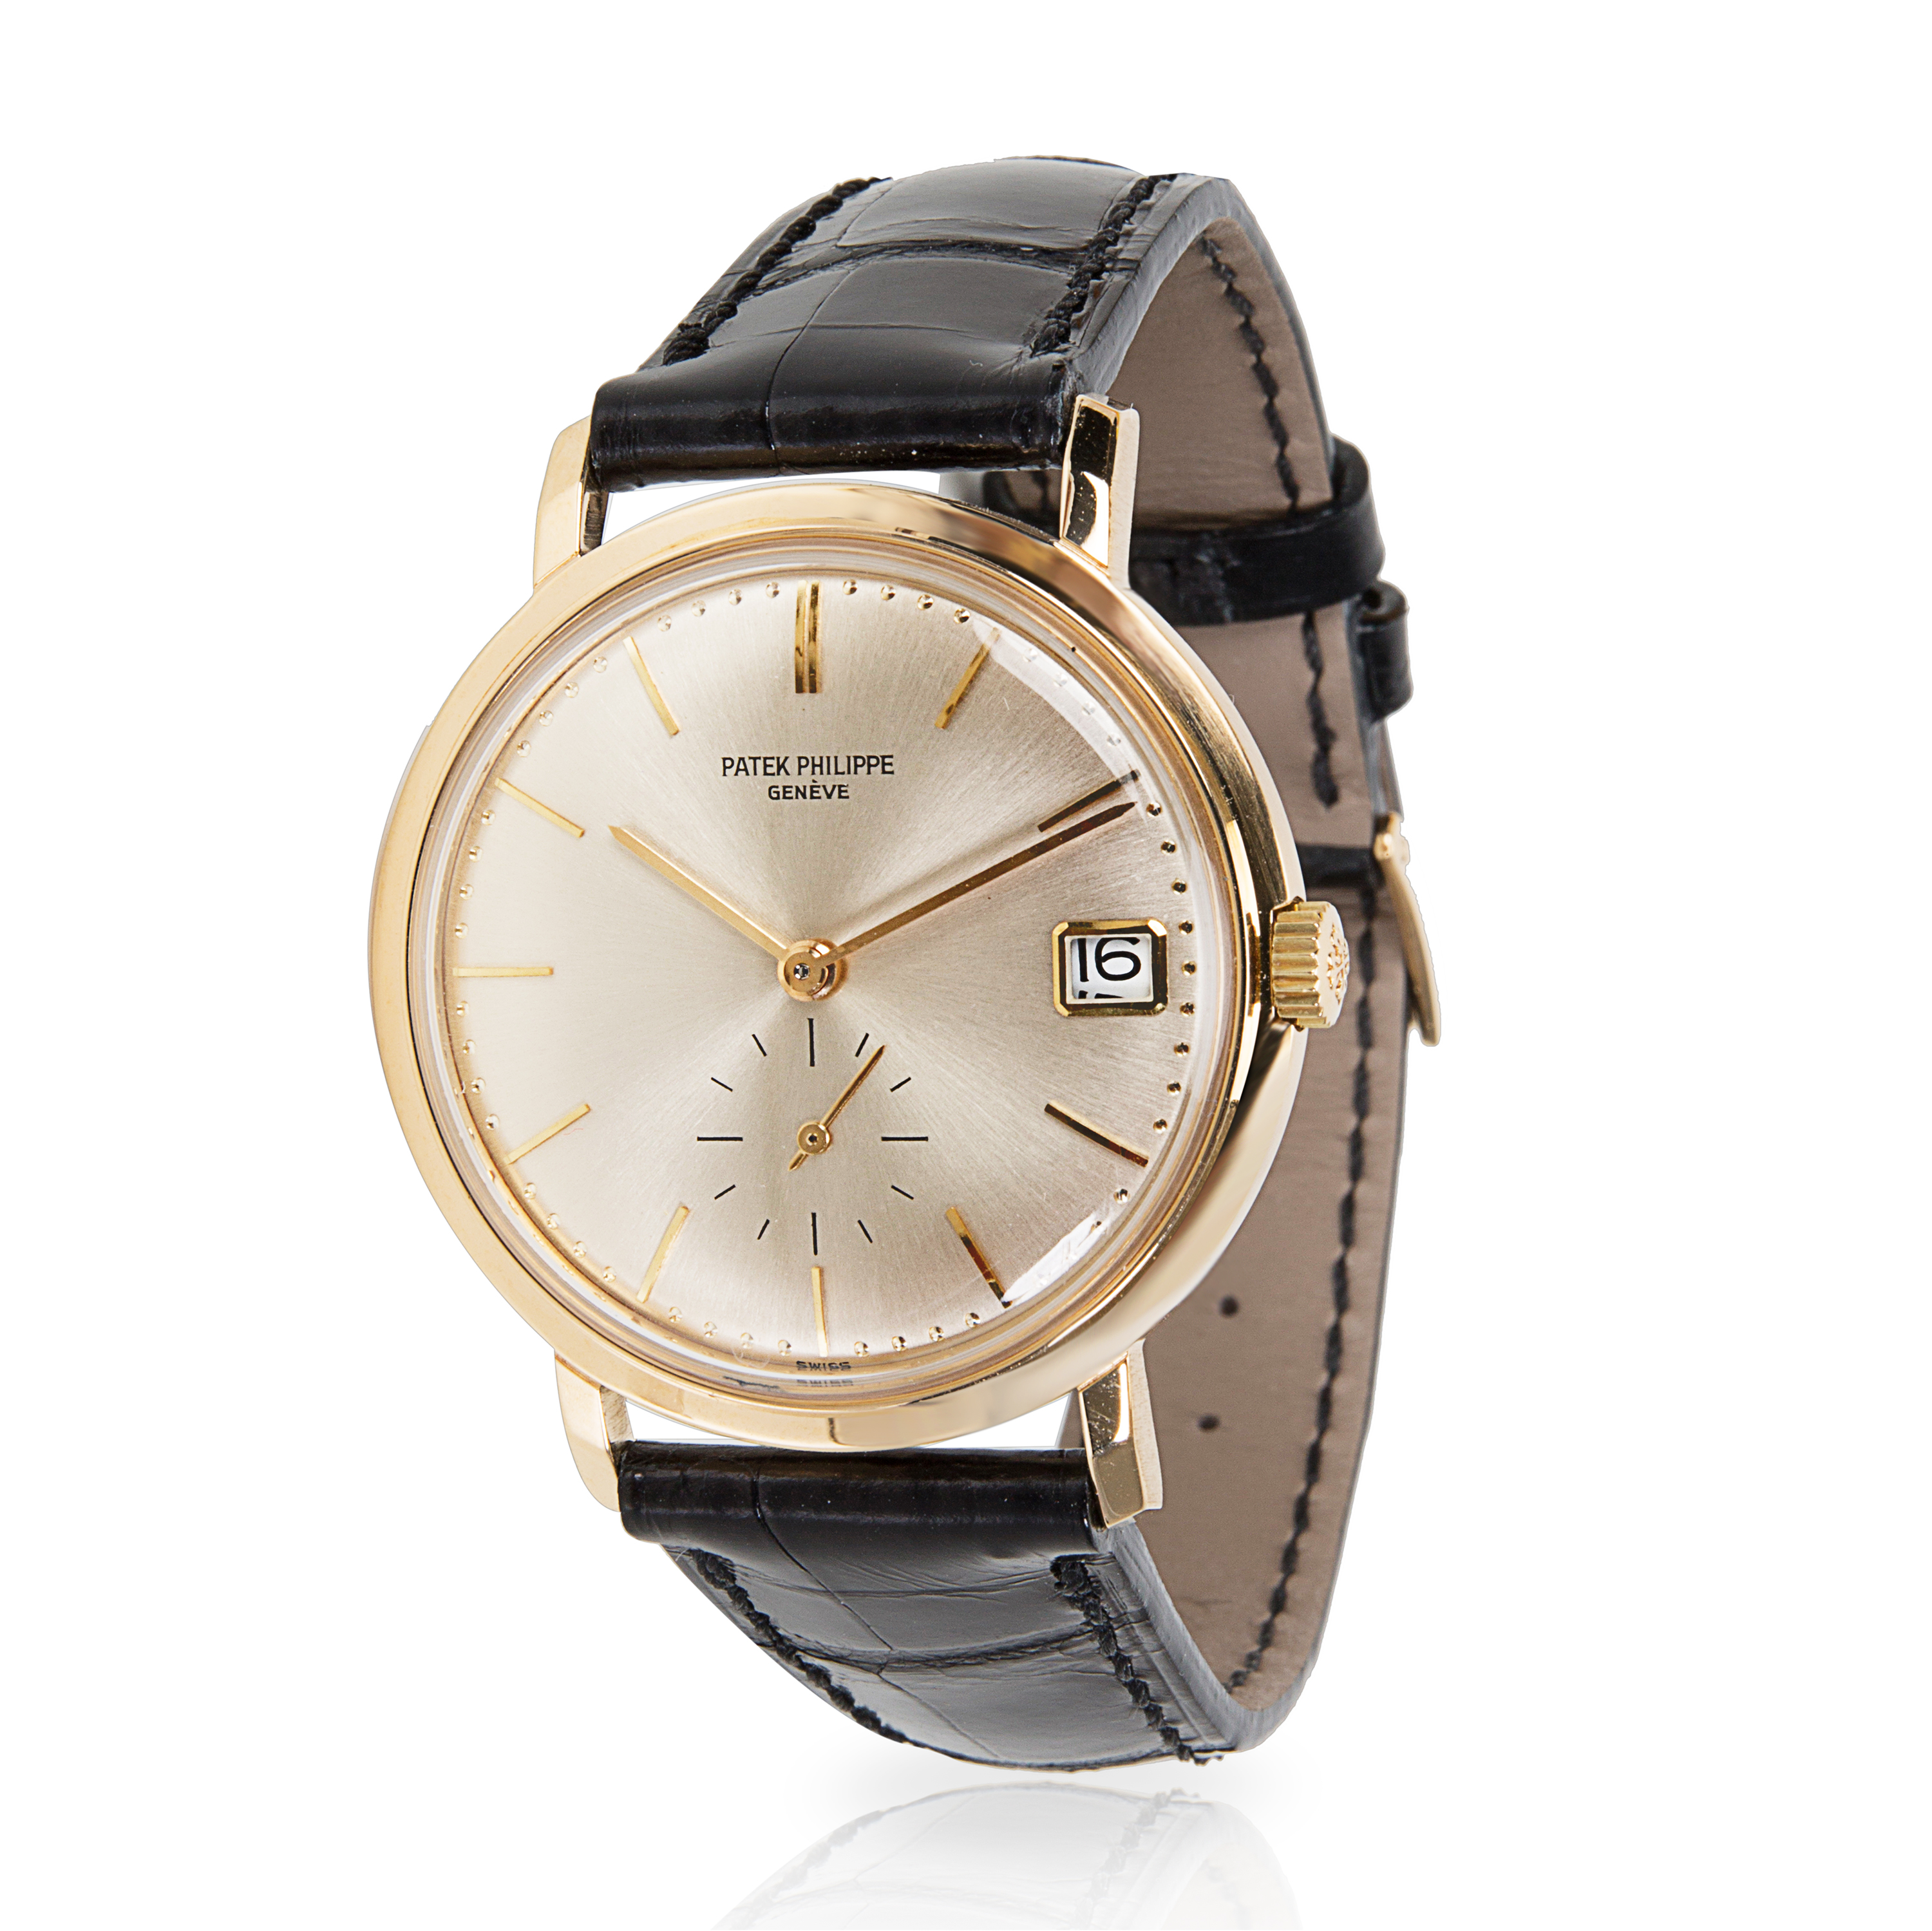 Patek-Philippe-Calatrava-3445J-Men-039-s-Watch-in-18kt-Yellow-Gold